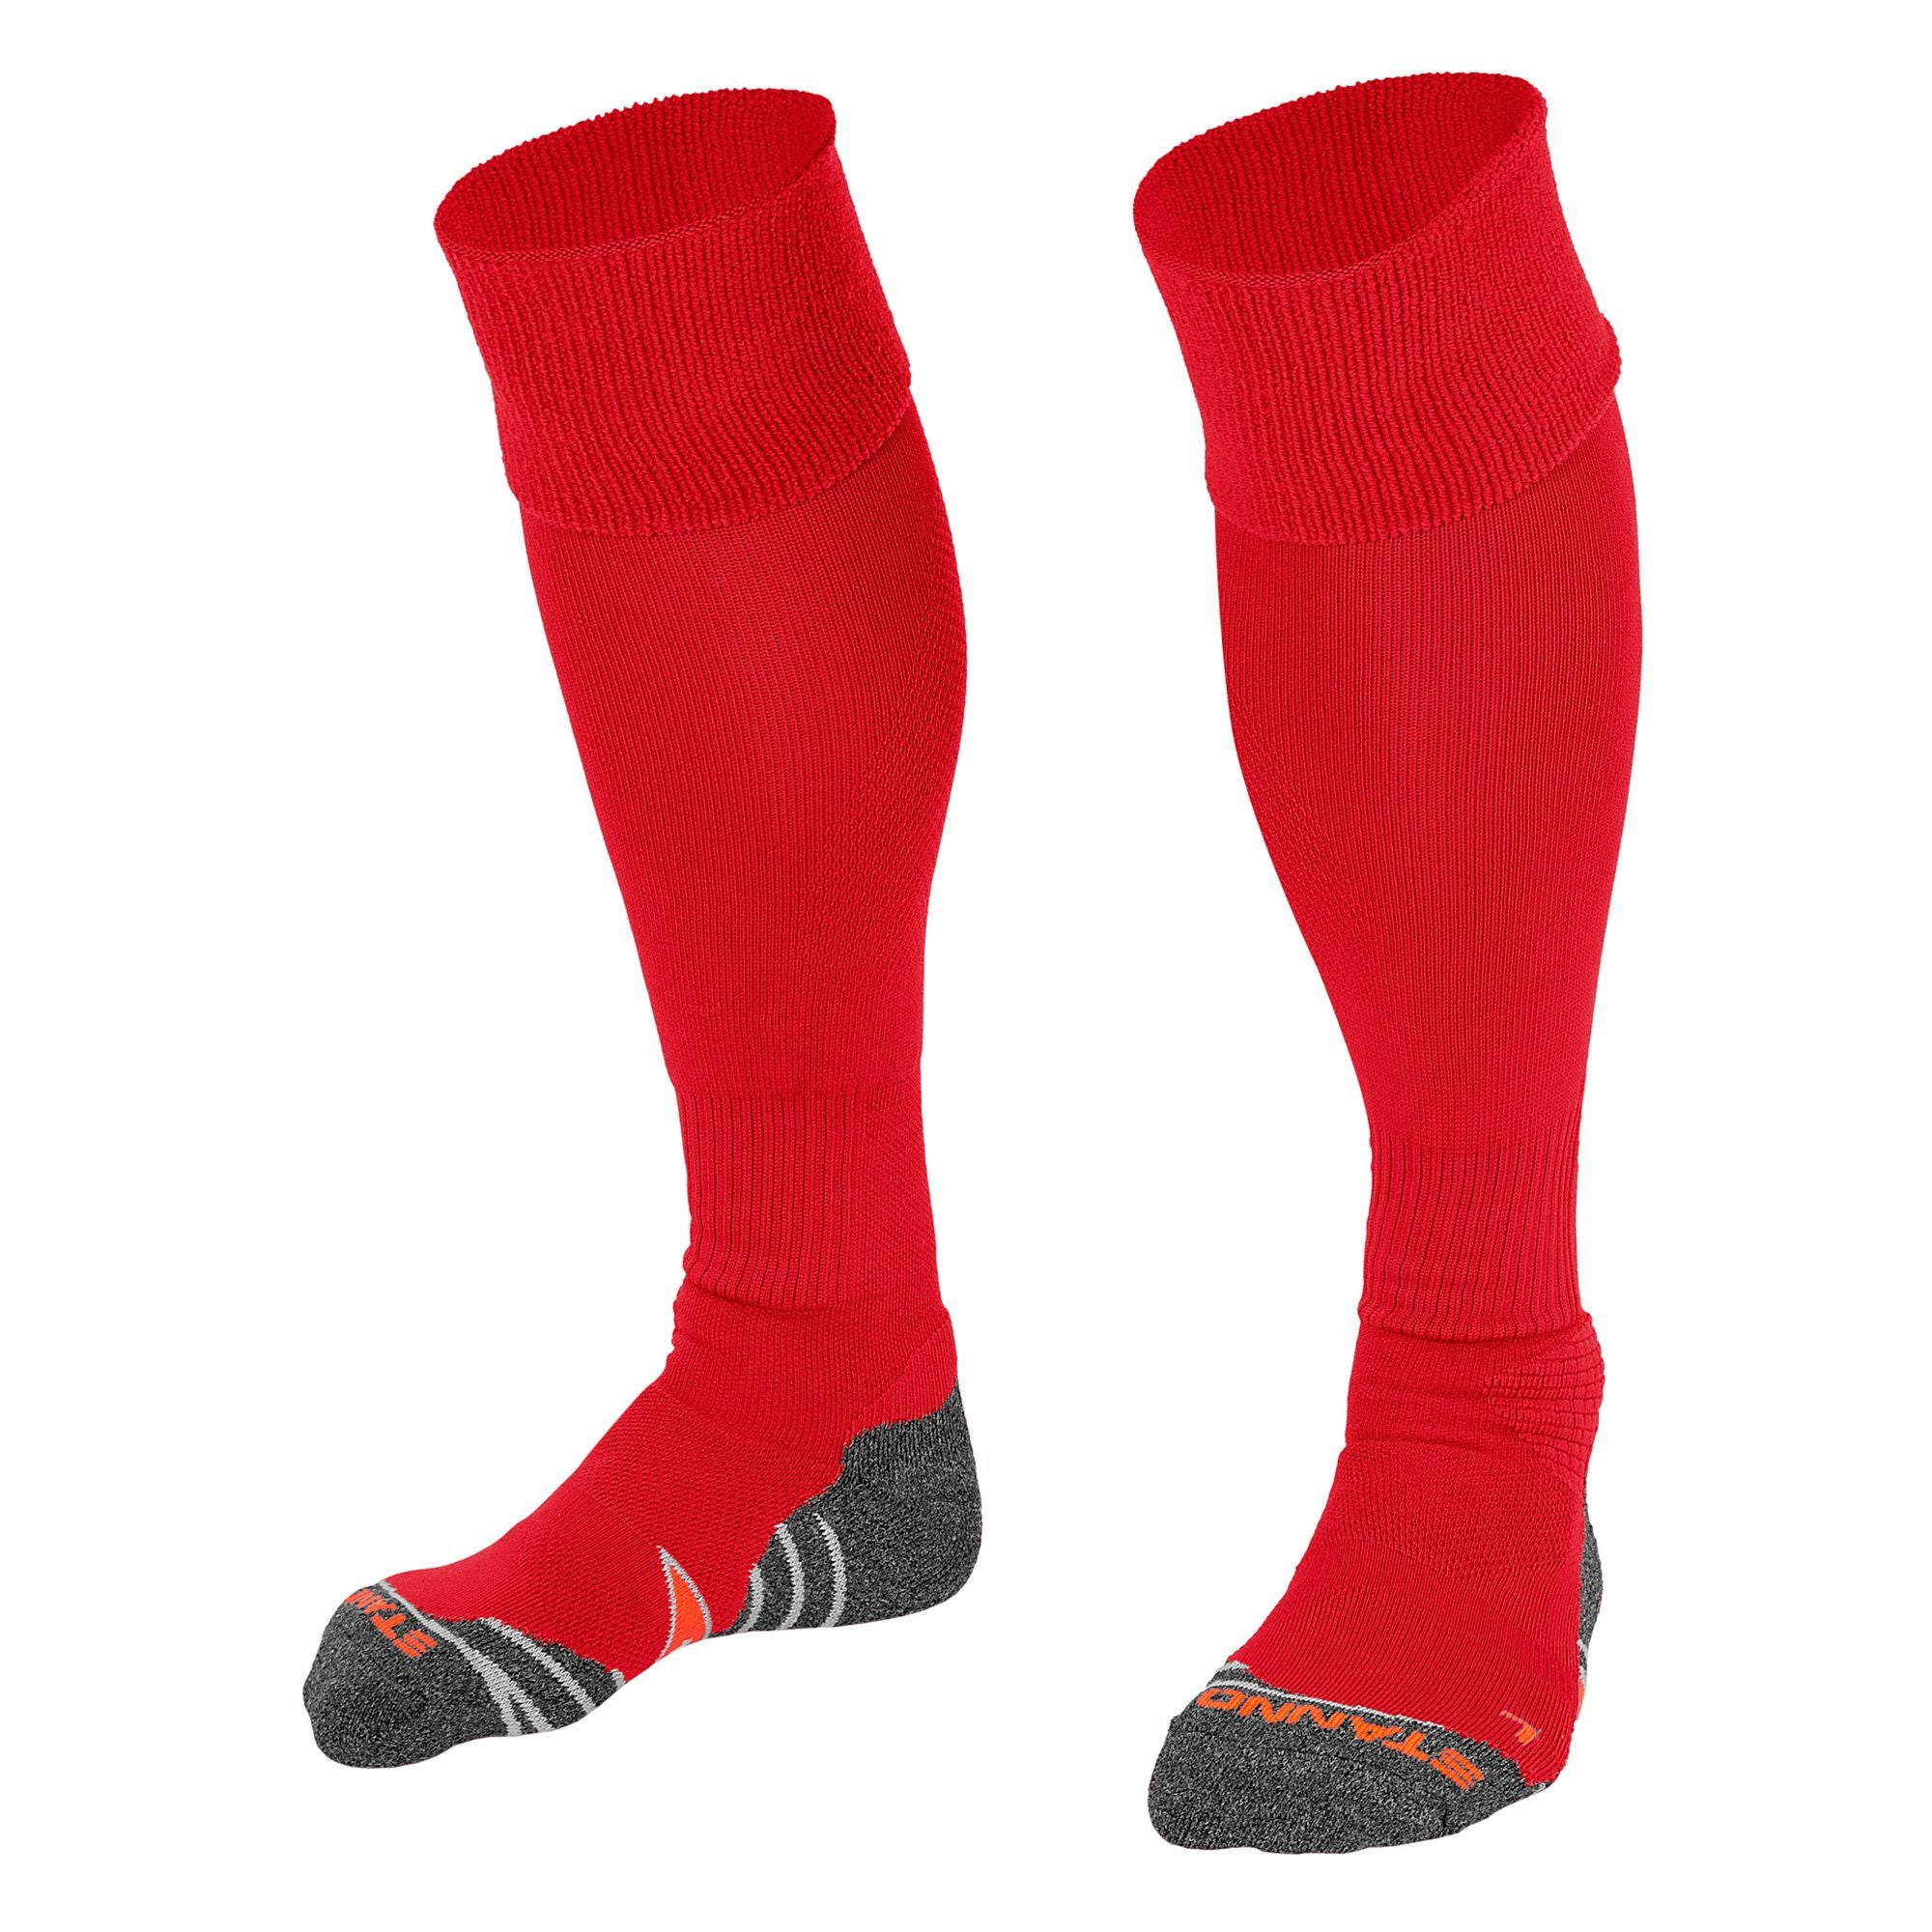 Stanno Uni Sock II football sock in red with grey, white and orange sole